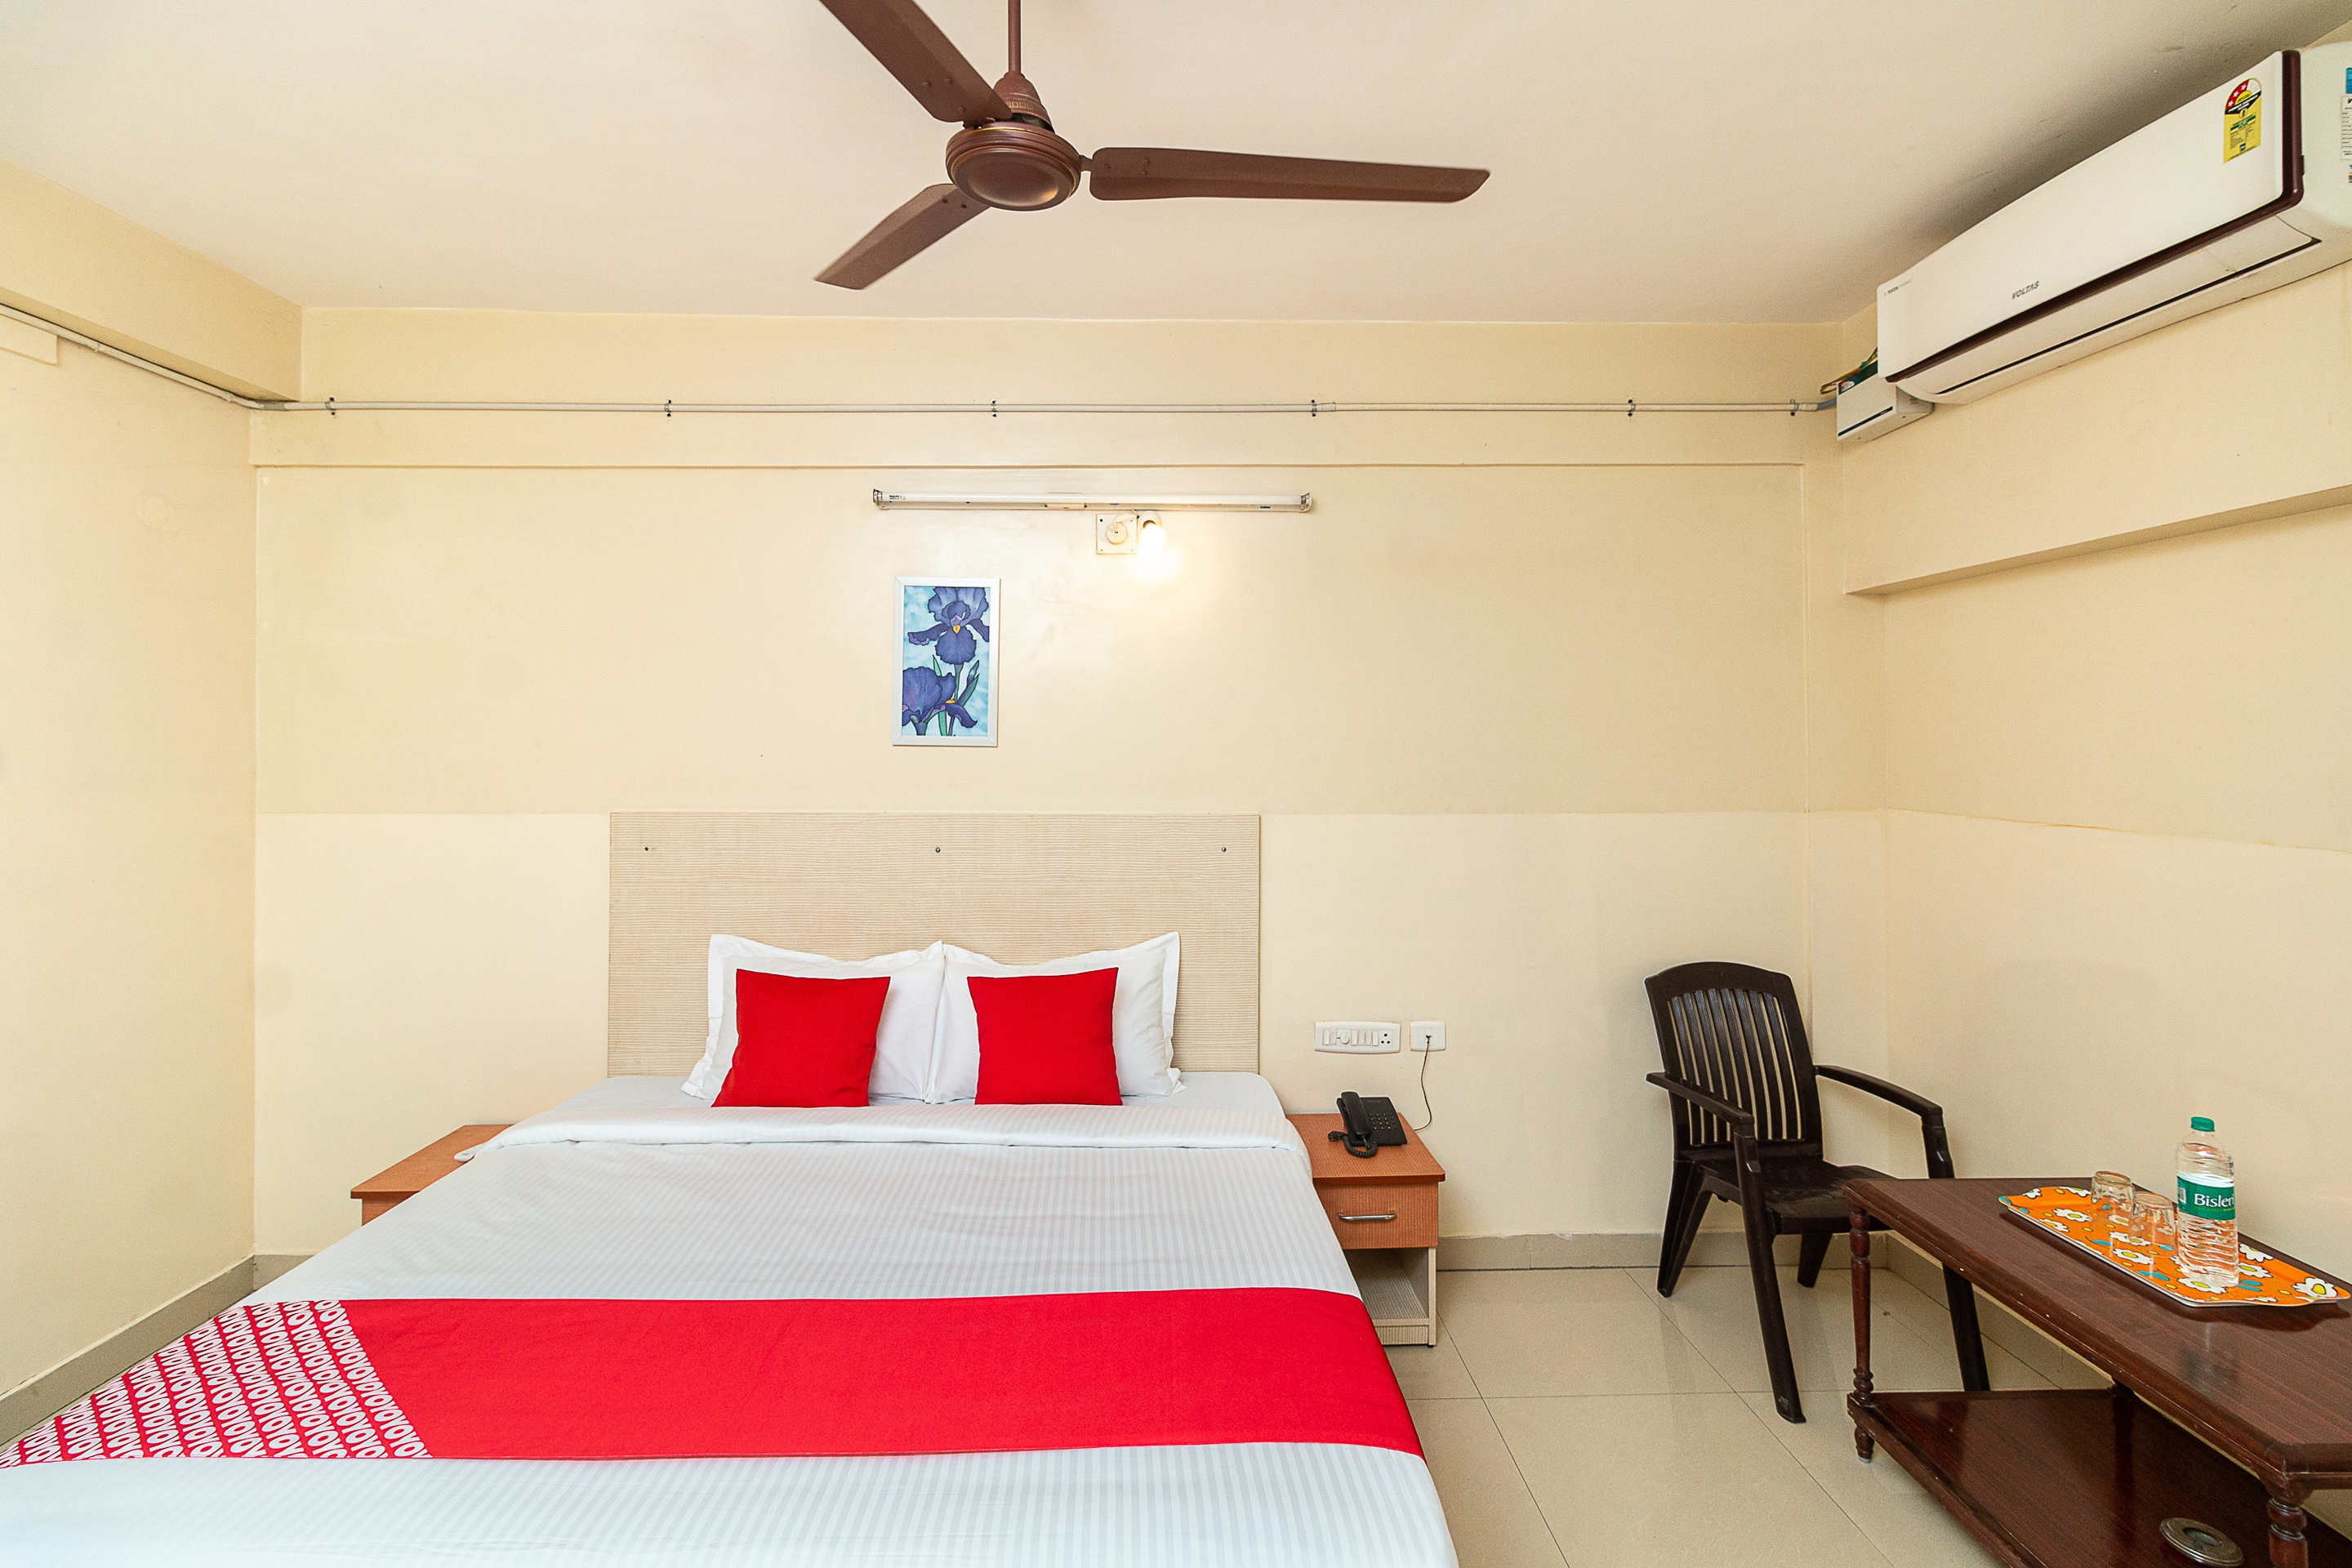 Hotels in Tiruppur Starting @ ₹665 - Upto 52% OFF on 9